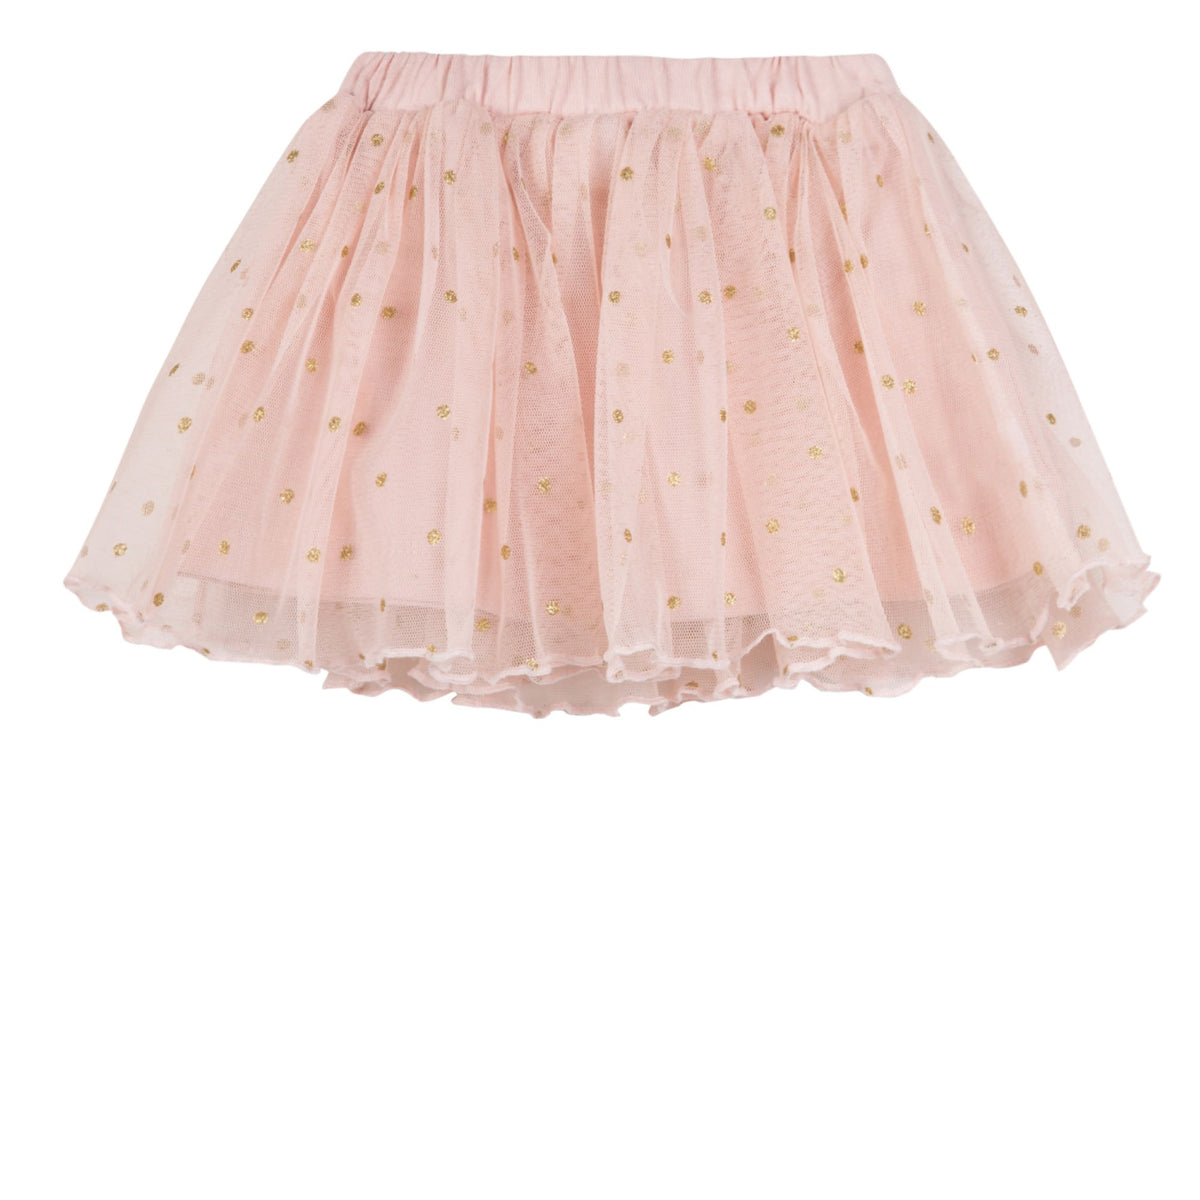 Baby & Toddler Girls Pink Tulle Skirt